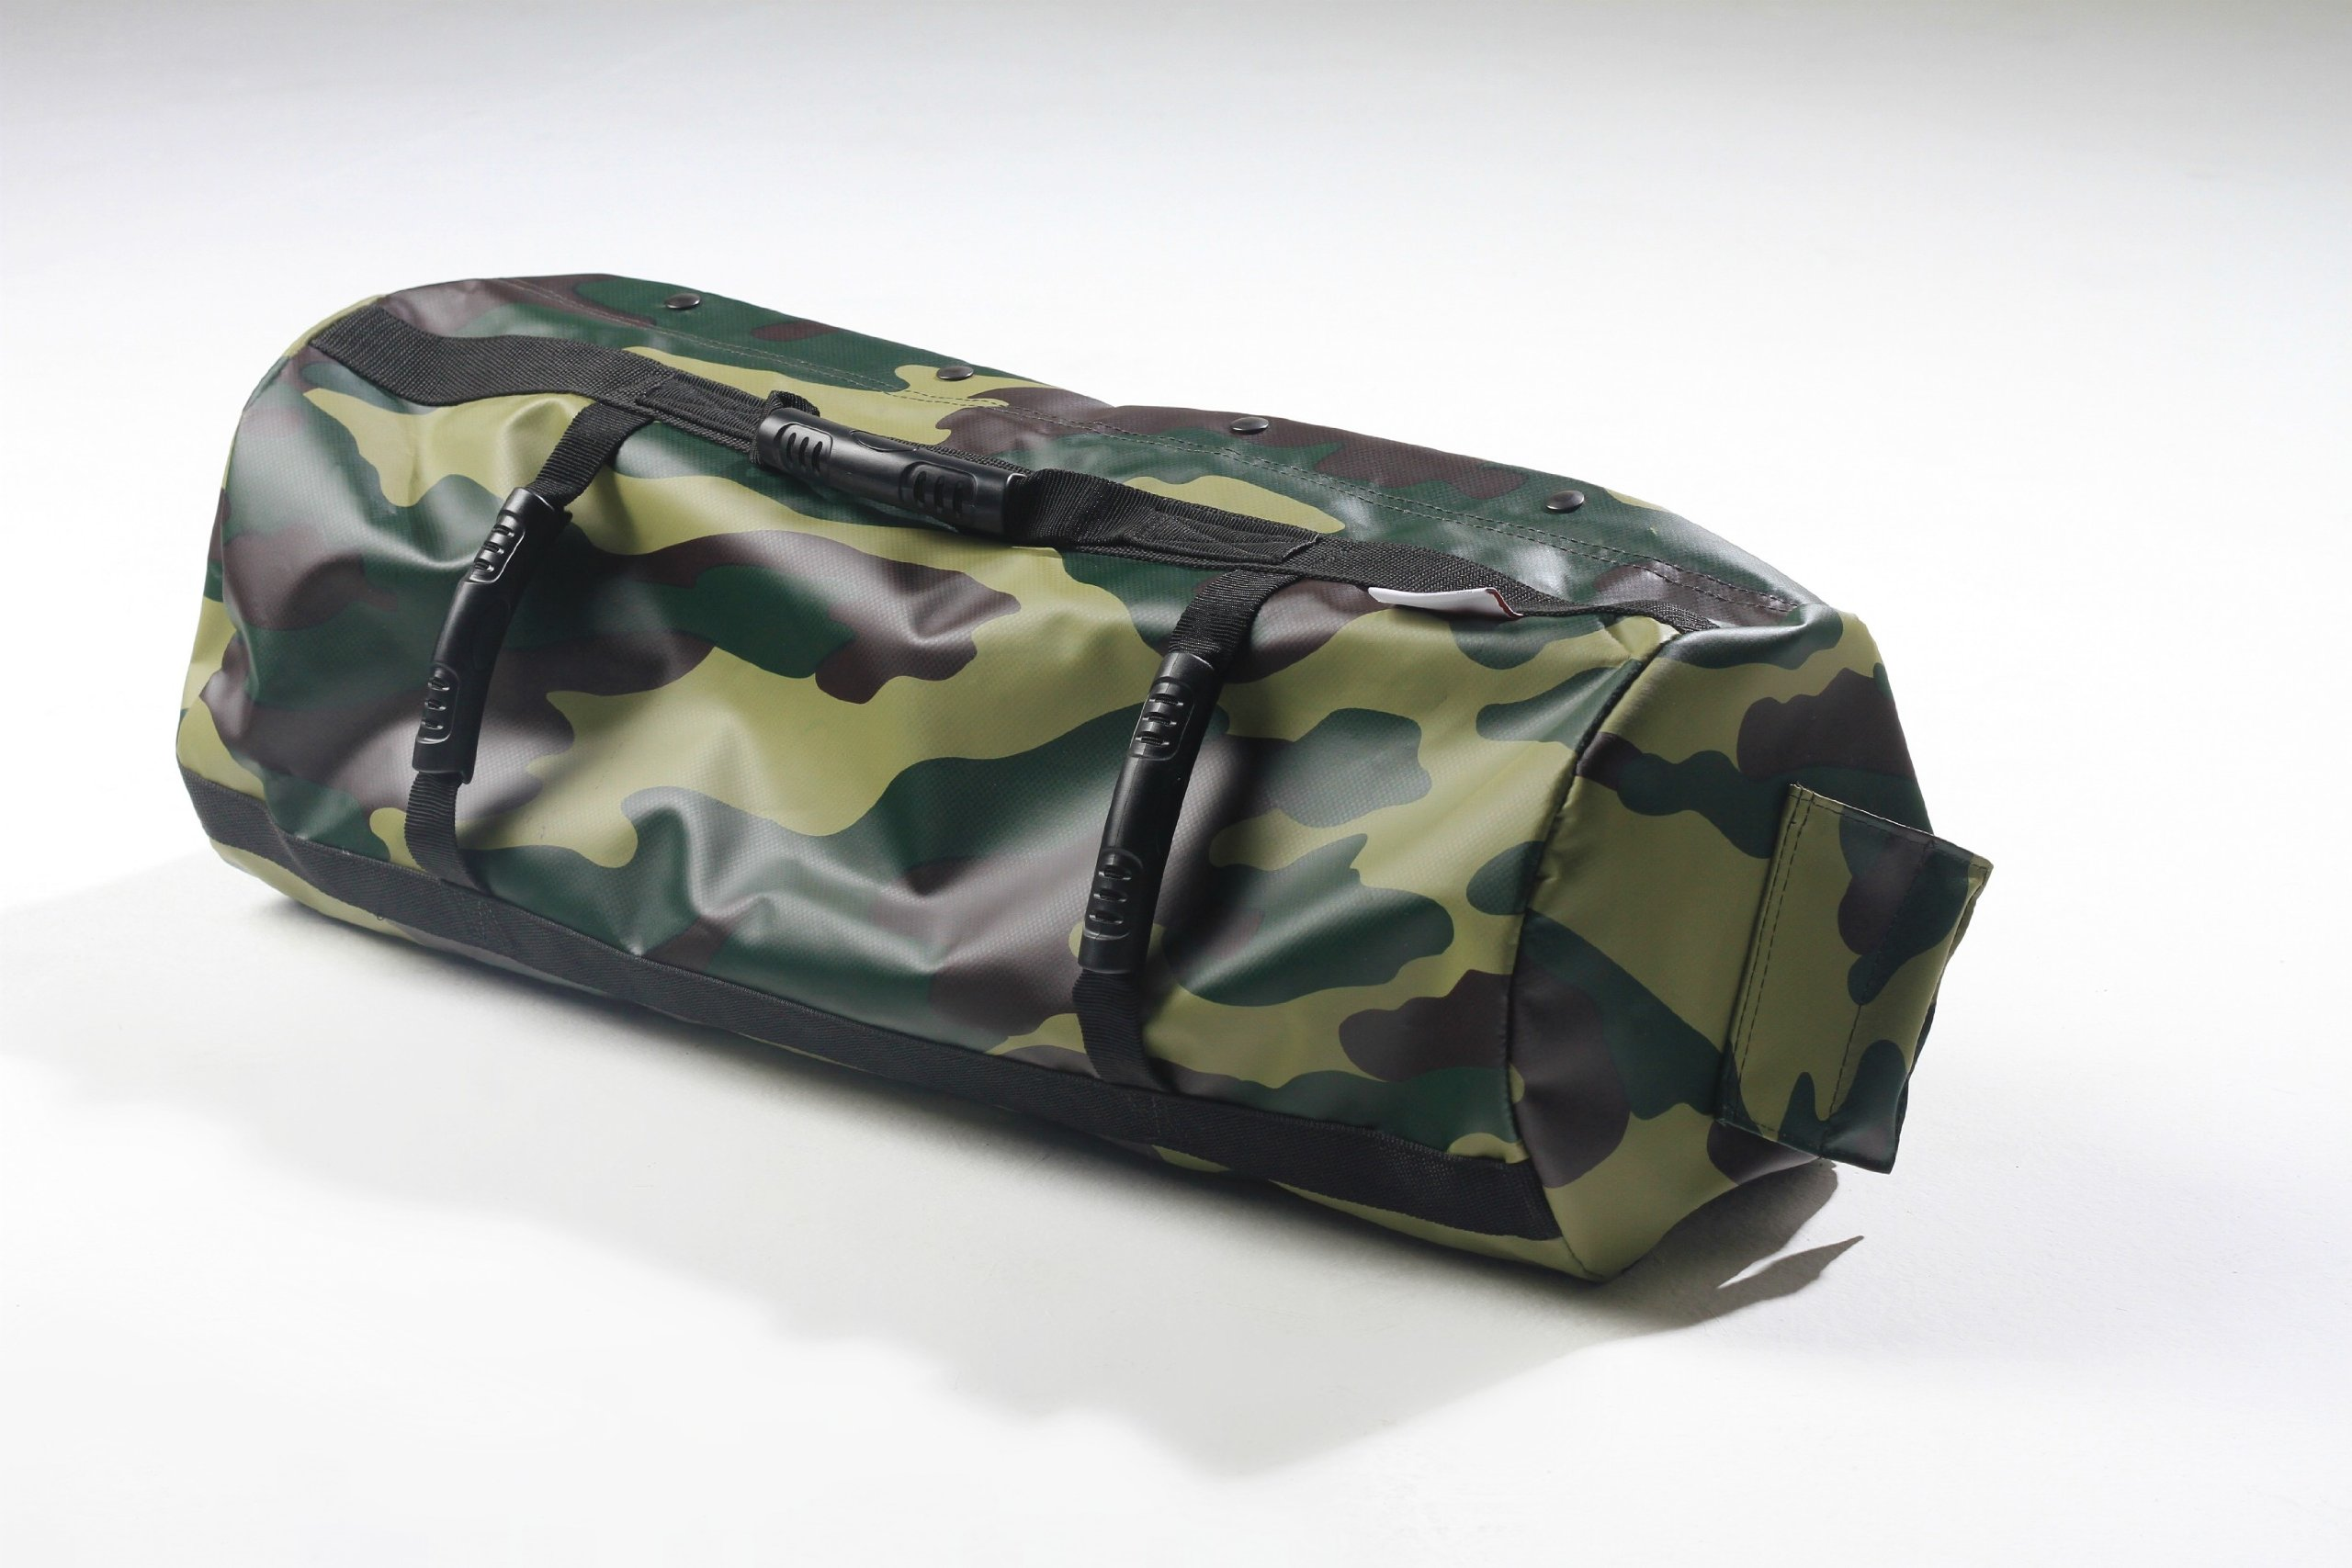 Ultimate Sandbag Training Strength Package - Camouflage Adjustable Fitness Sandbag with Filler Bags 40-80lbs